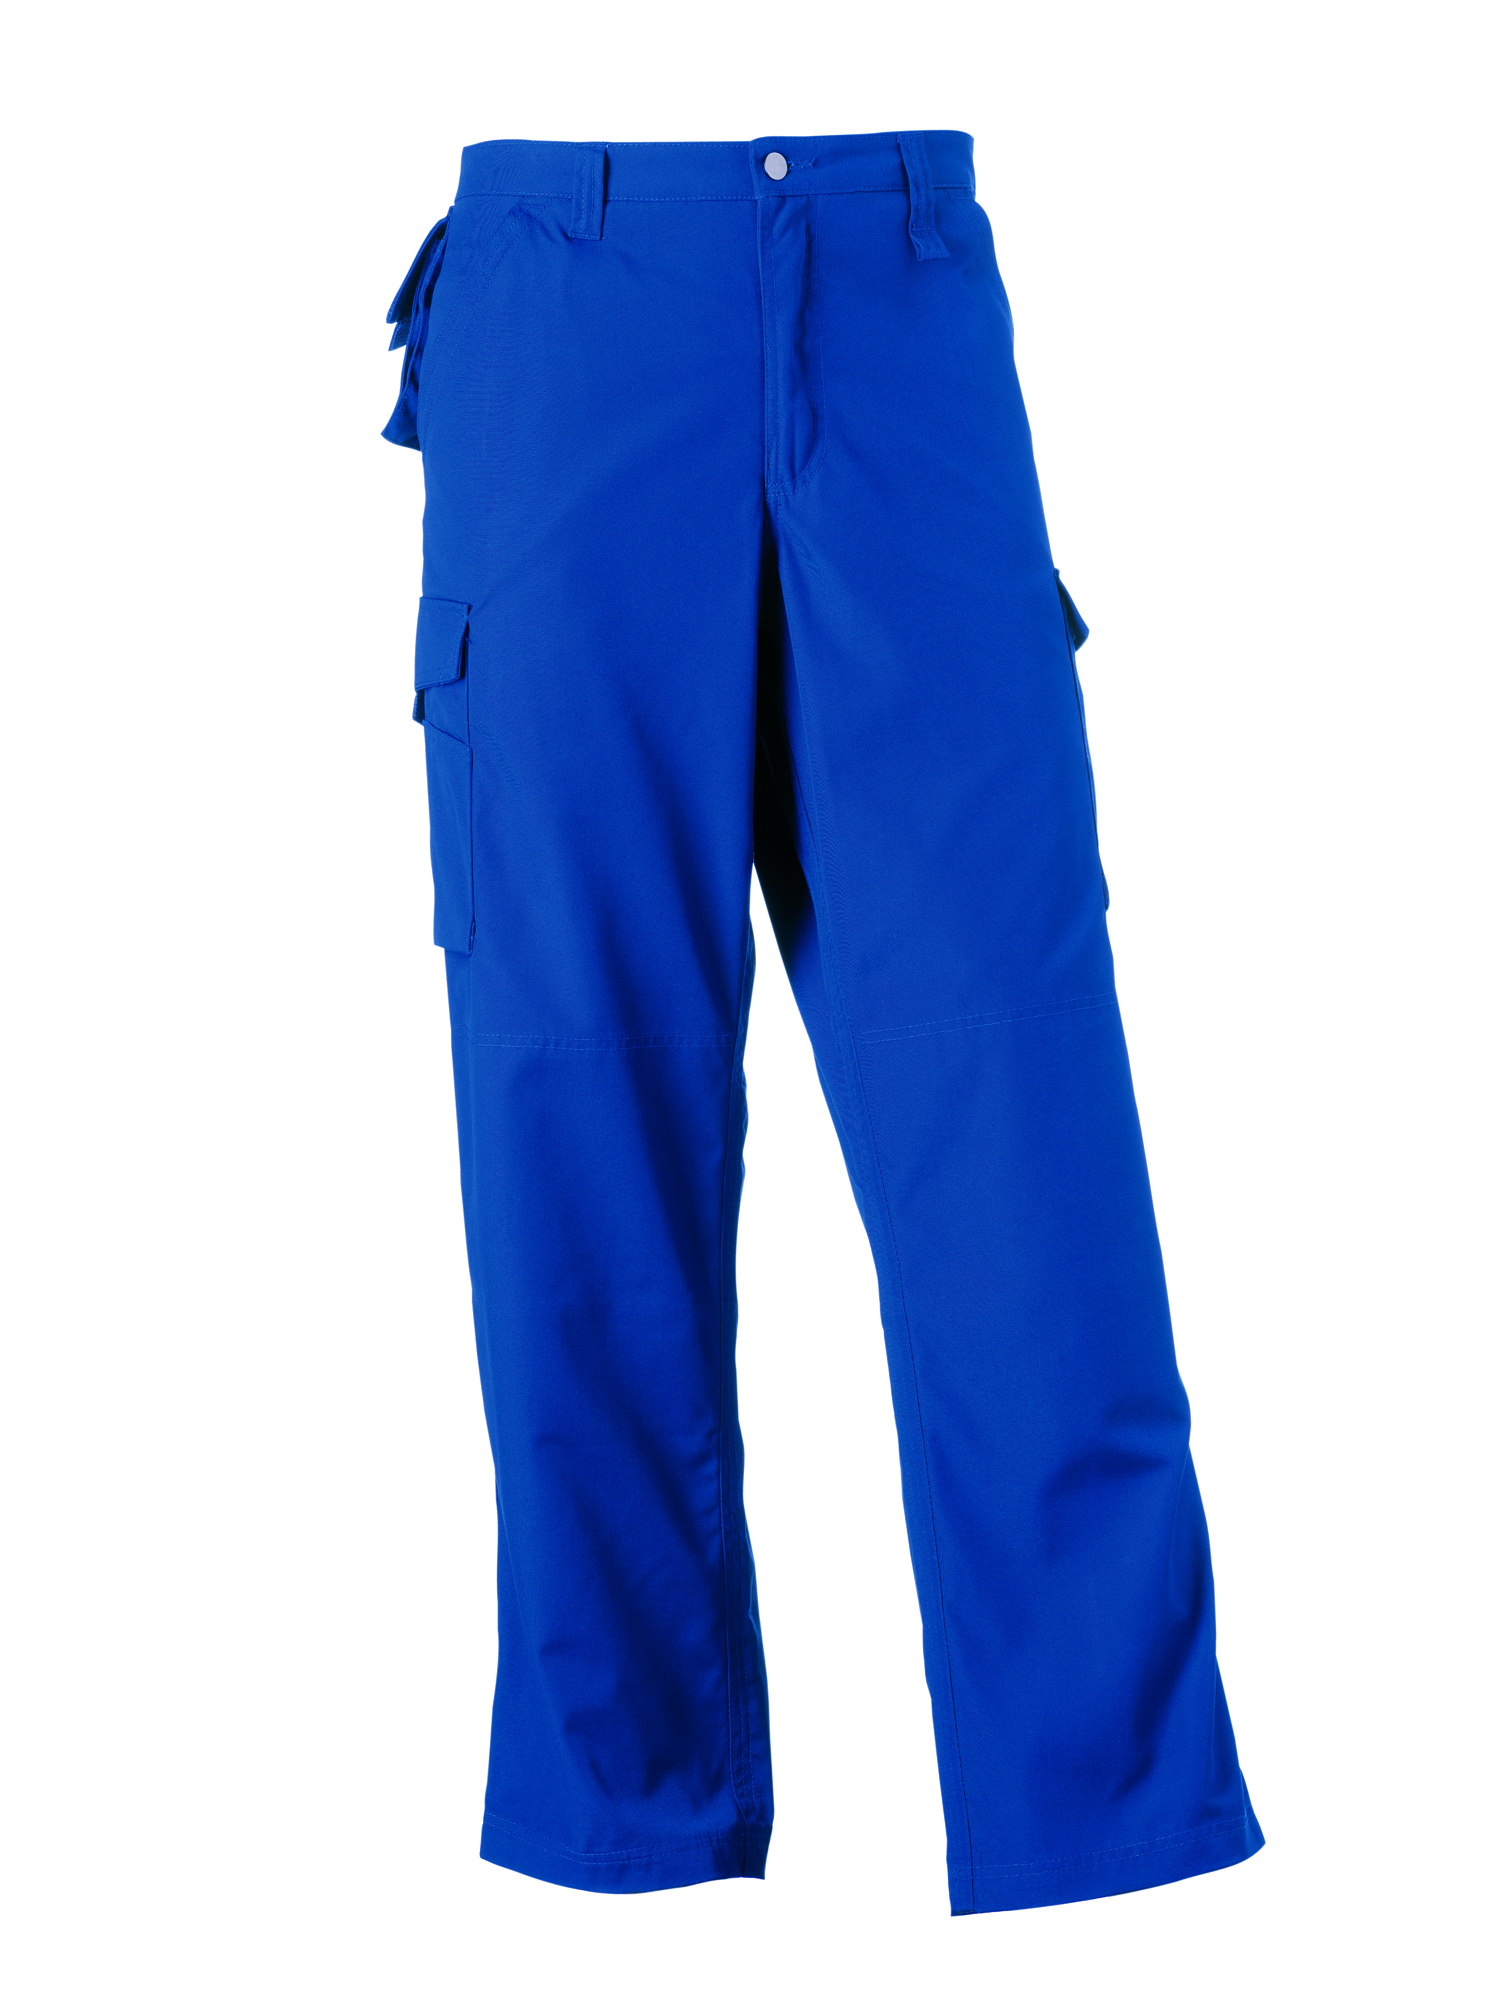 Heavy Duty Trousers  - Bright Royal - 44-30